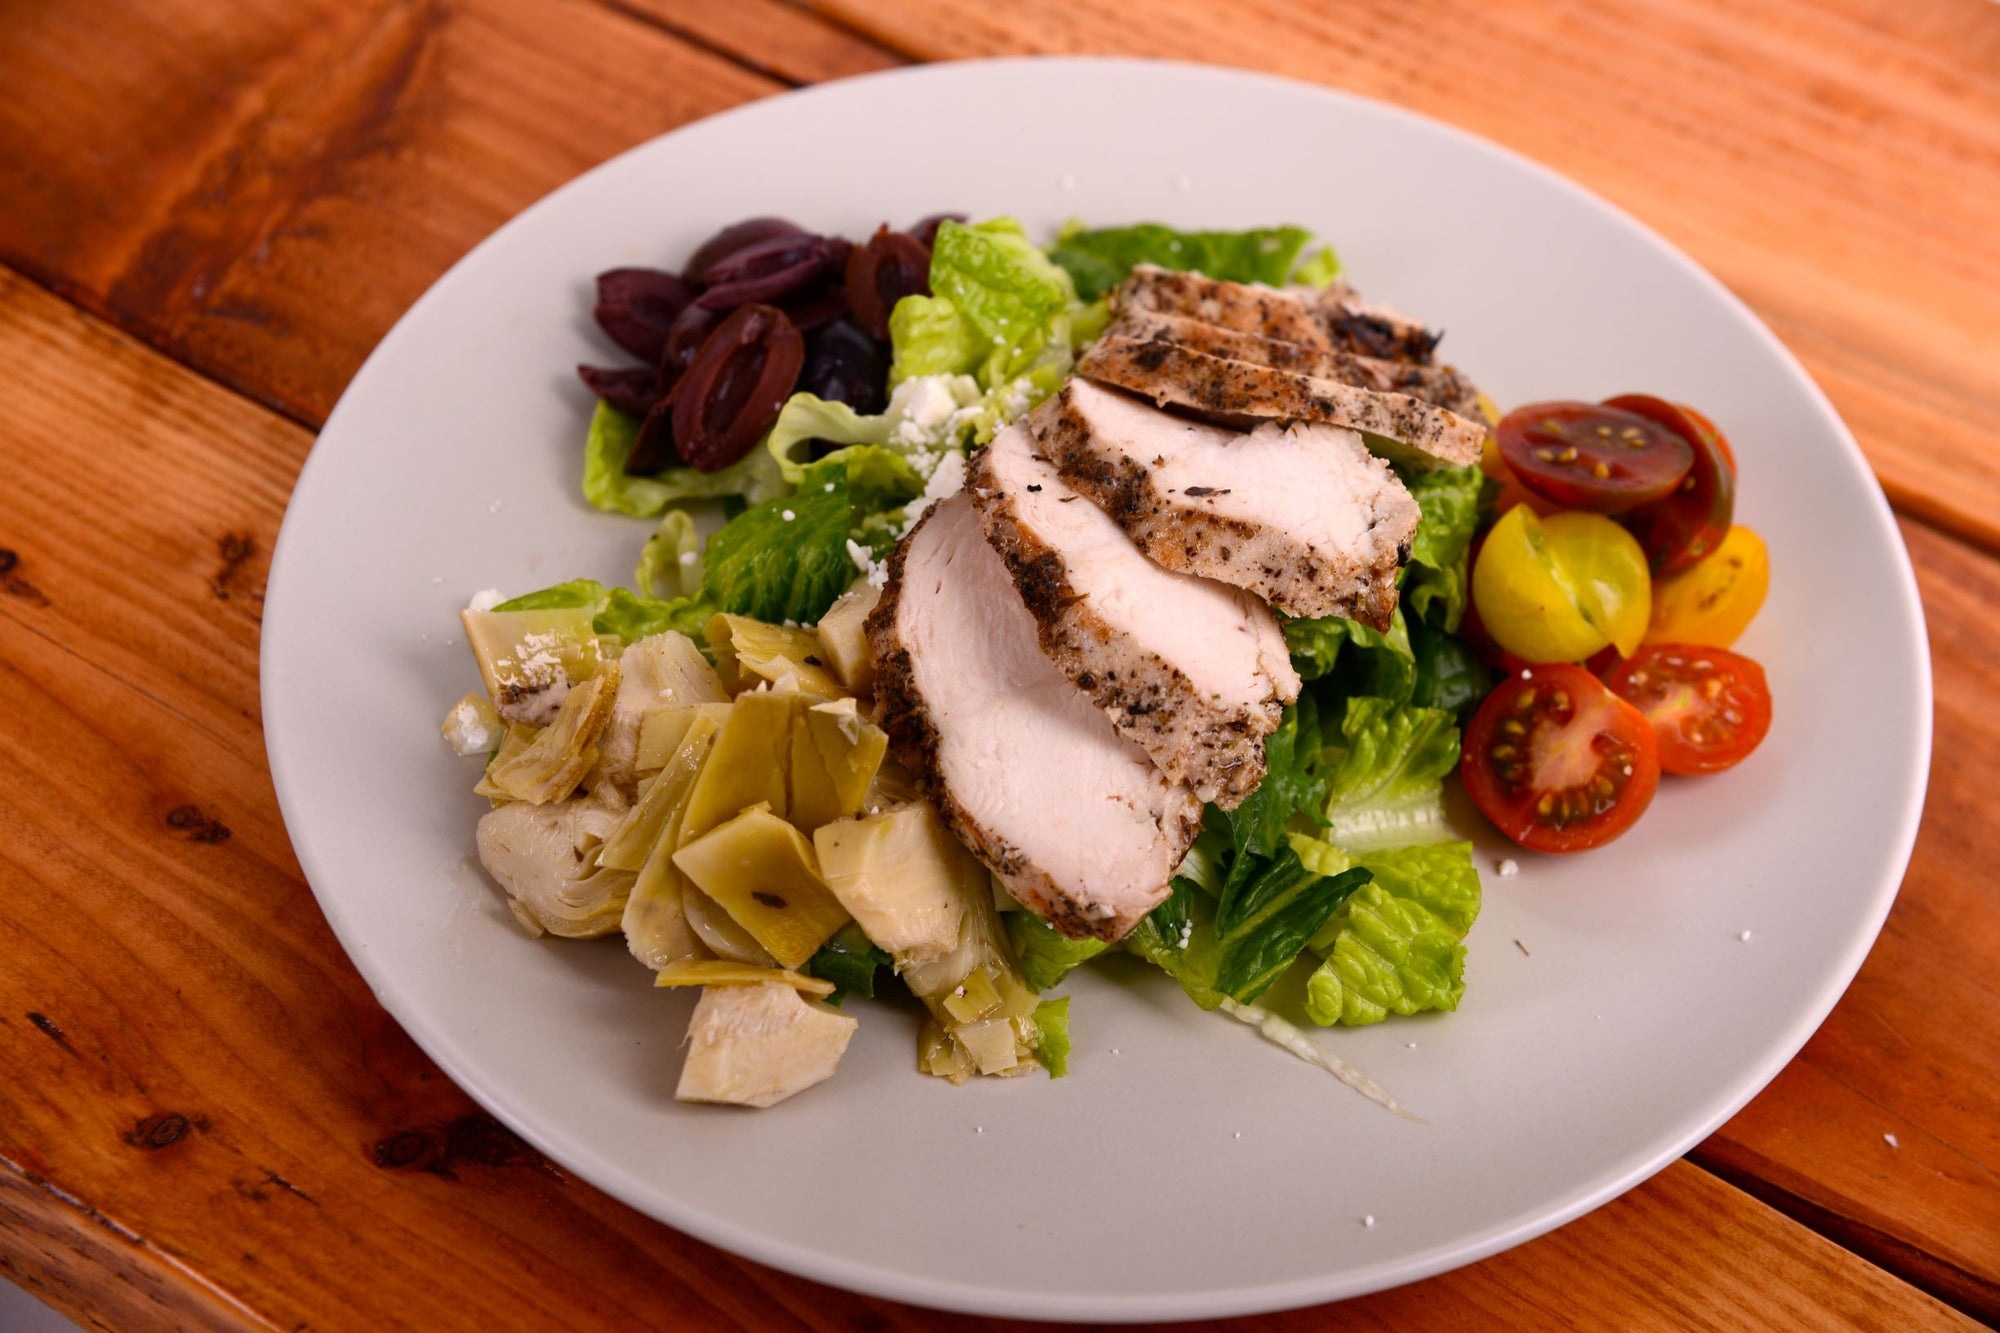 Mediterranean Salad w/ Free Range Chicken Breast (Thursday 10/8 Delivery)